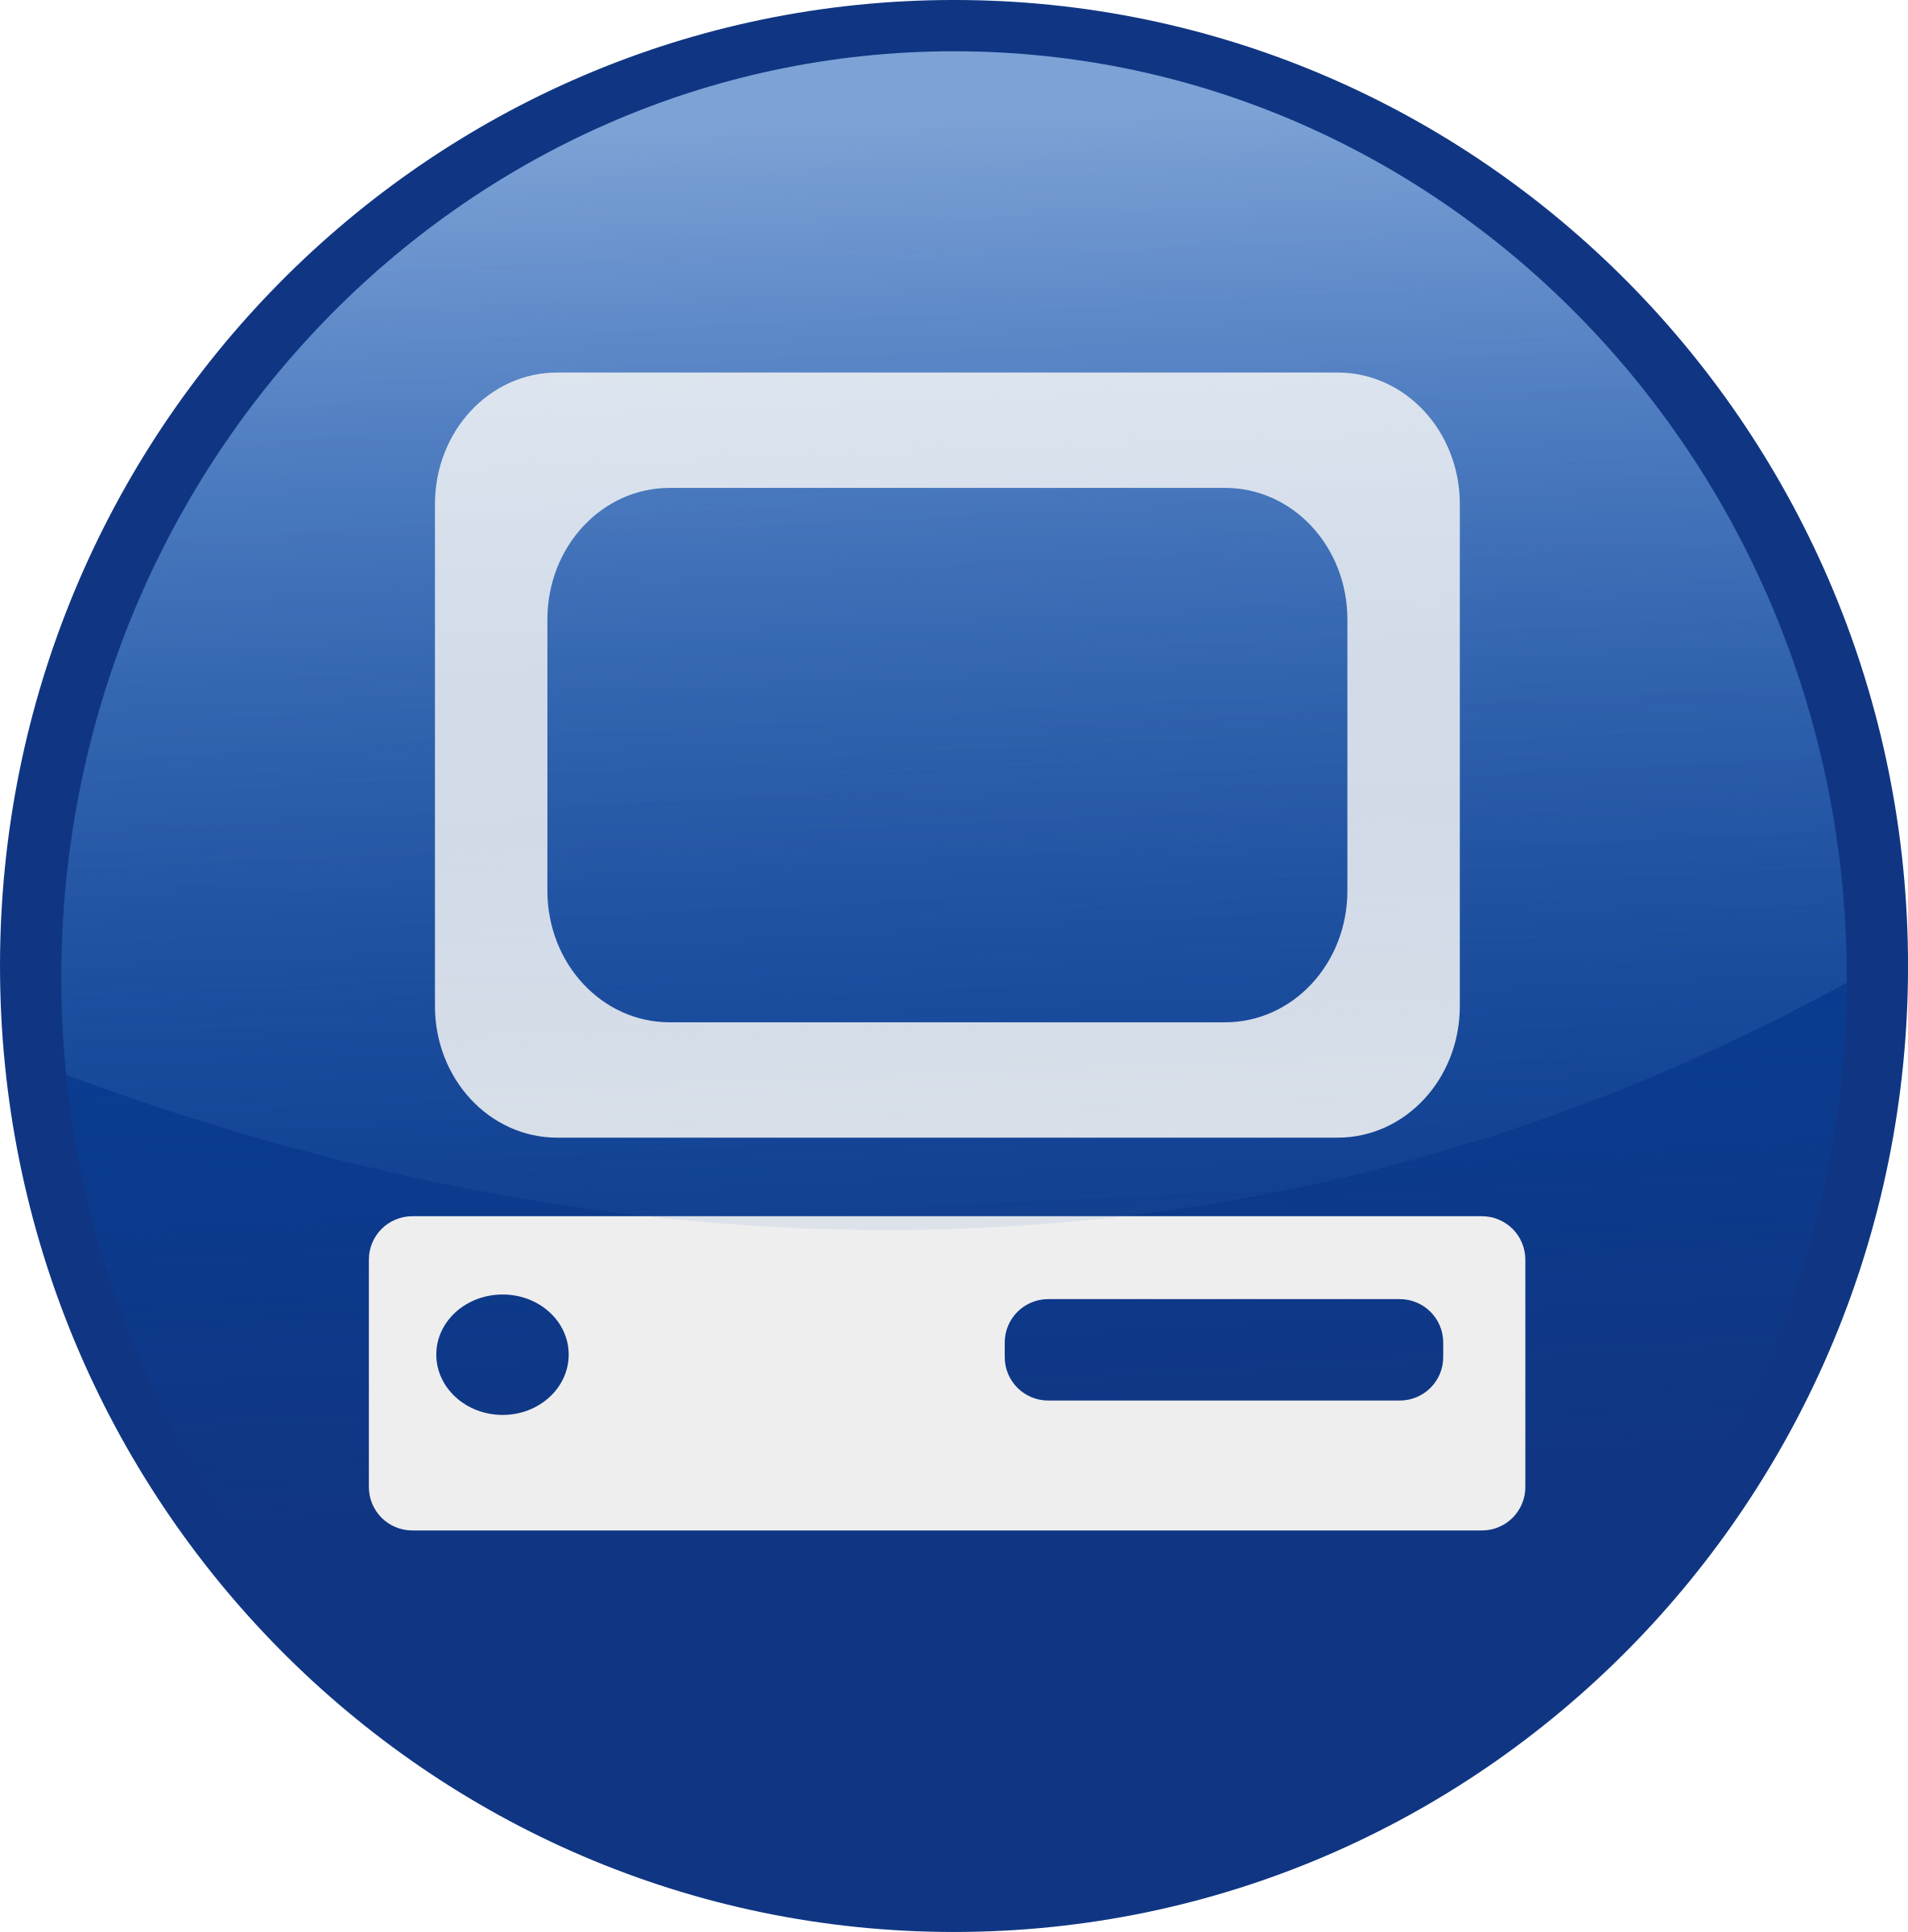 Pc blue big image. Circle clipart computer